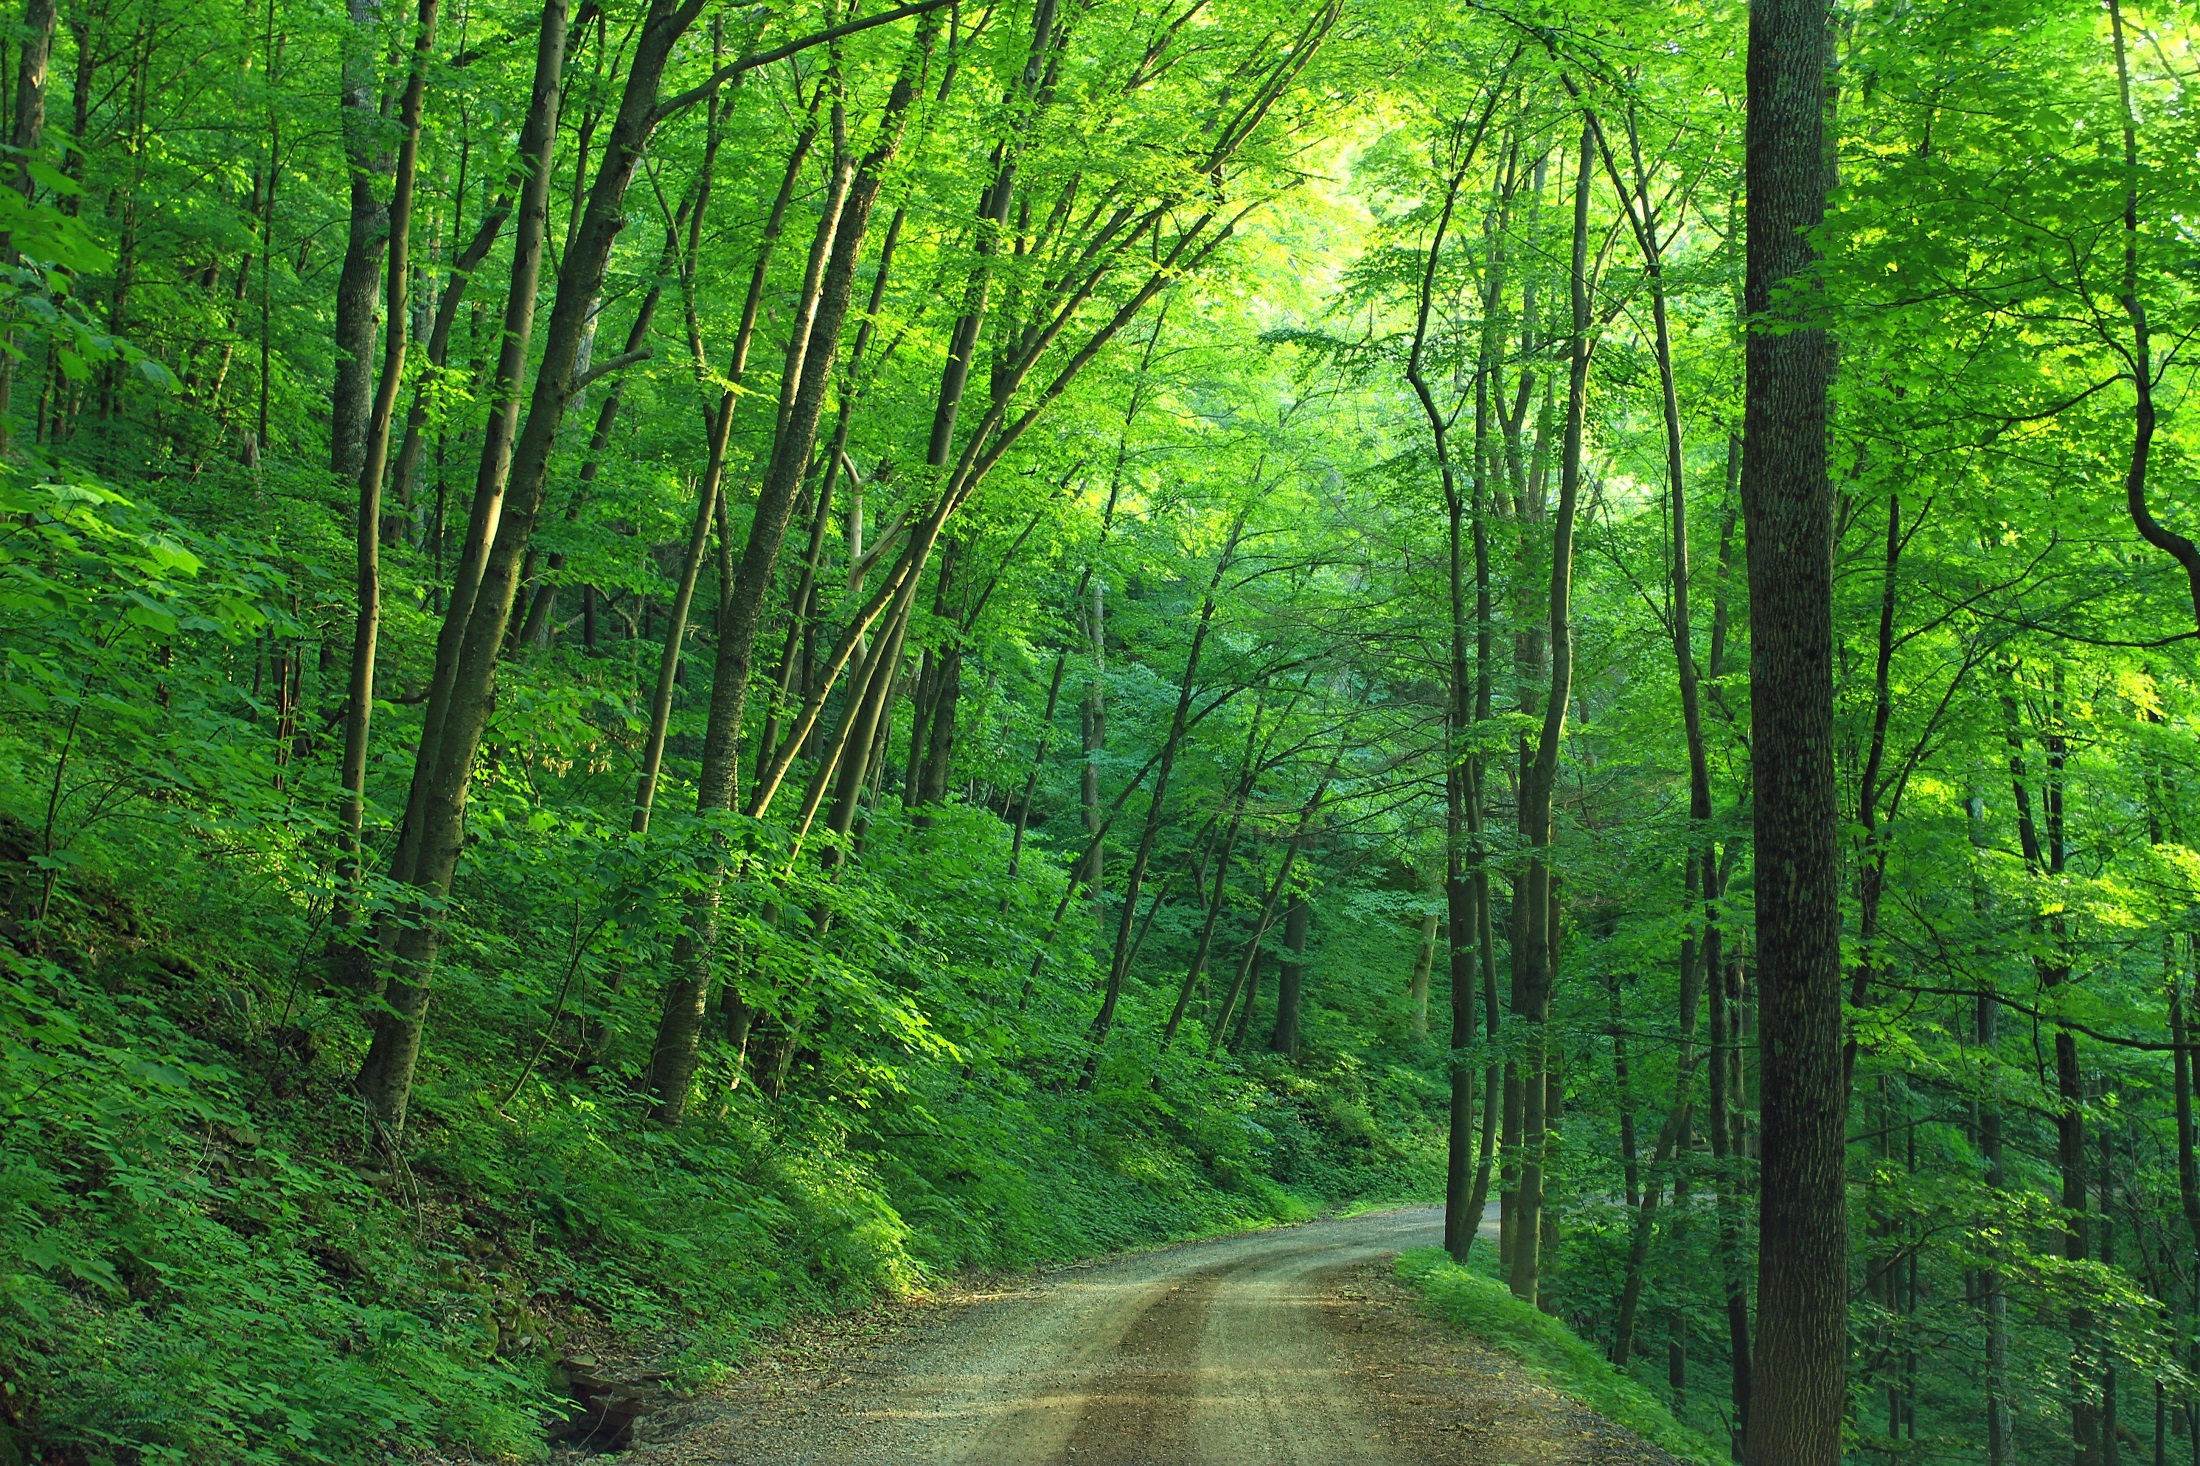 green tree forest - photo #13